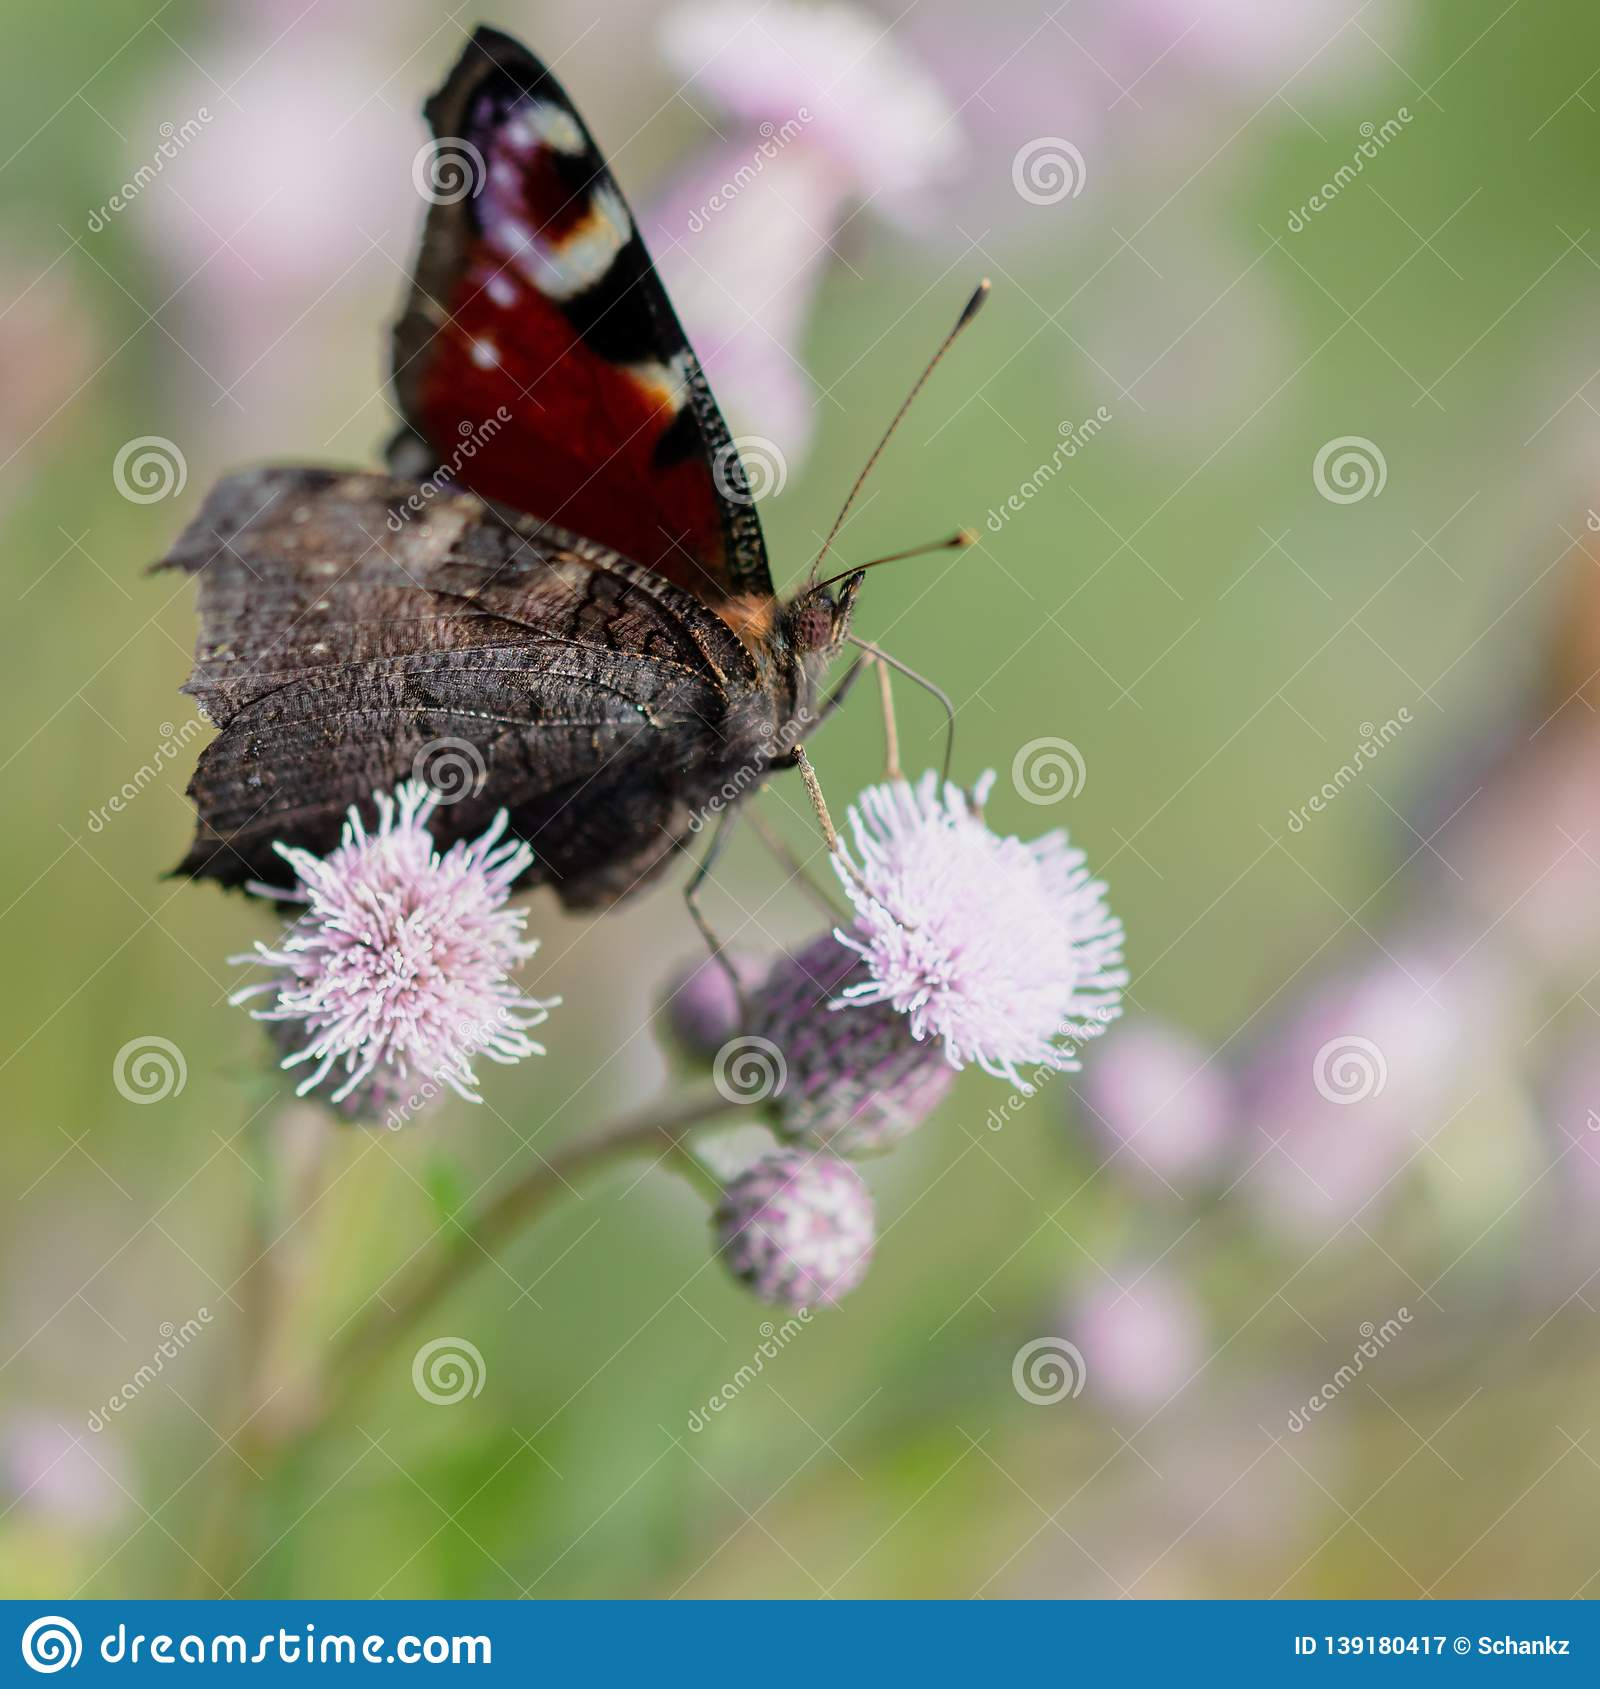 Butterfly on a flower in the nature